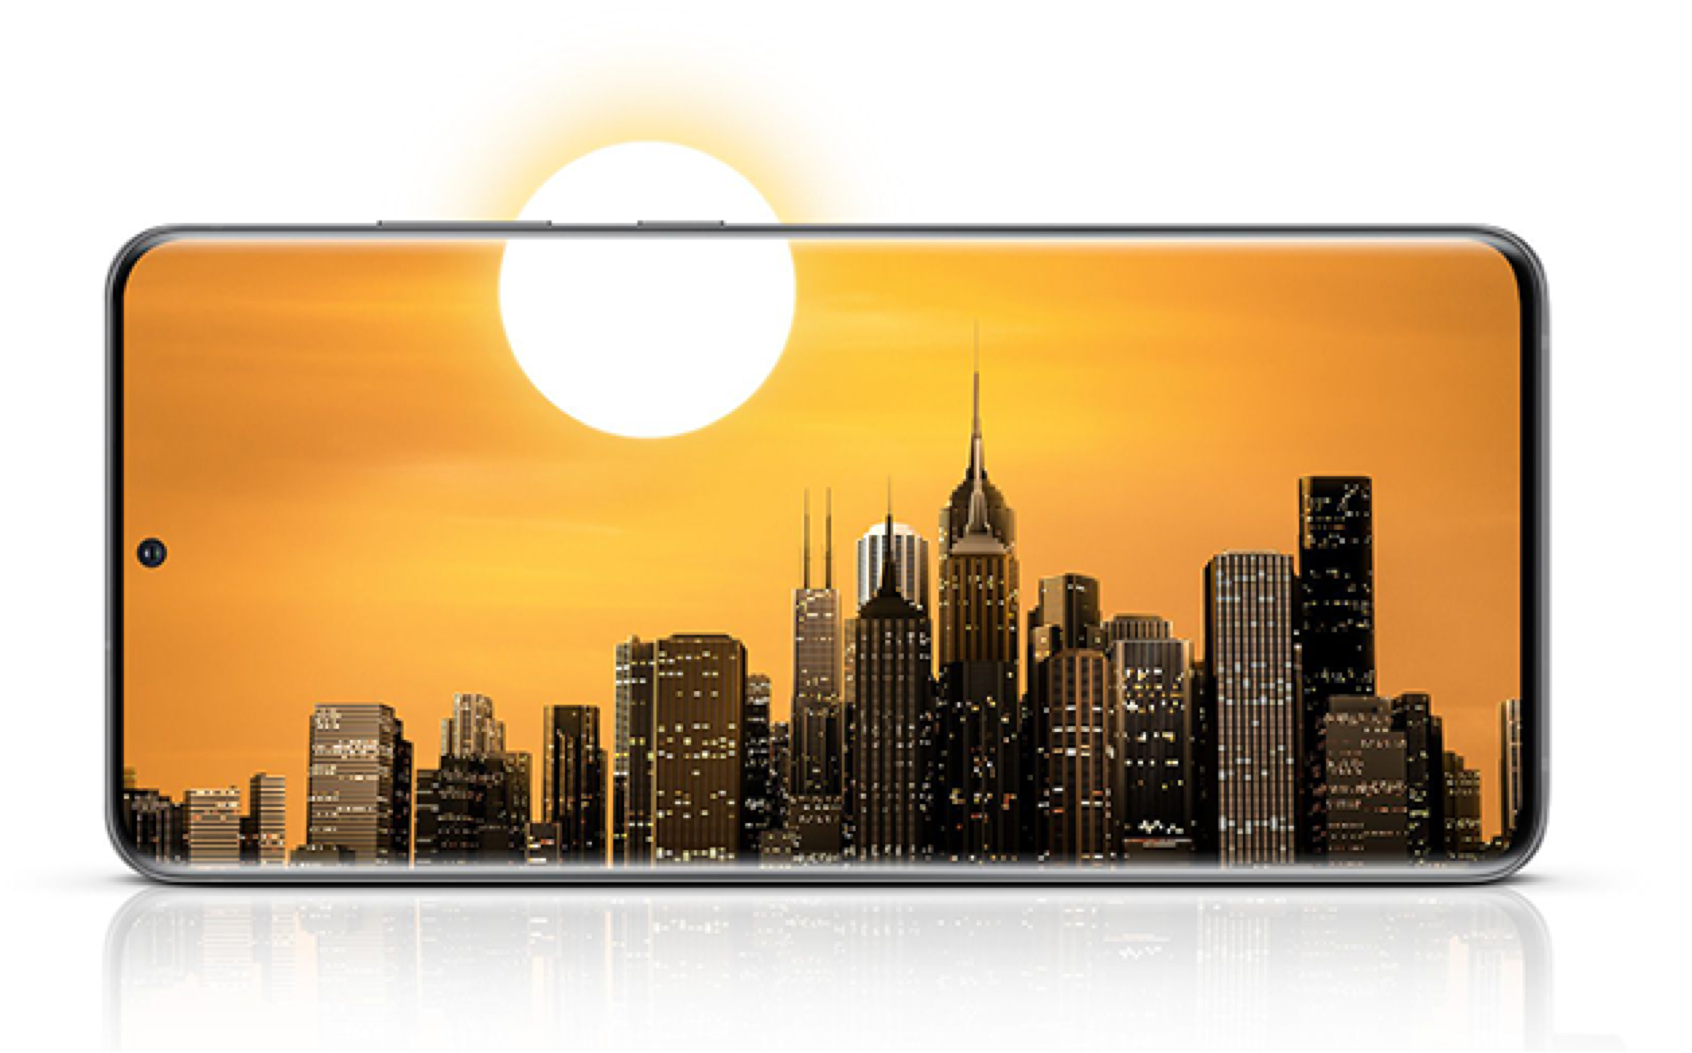 Samsung S20 5G screen horizontal display of city skyline with sun extending past screen